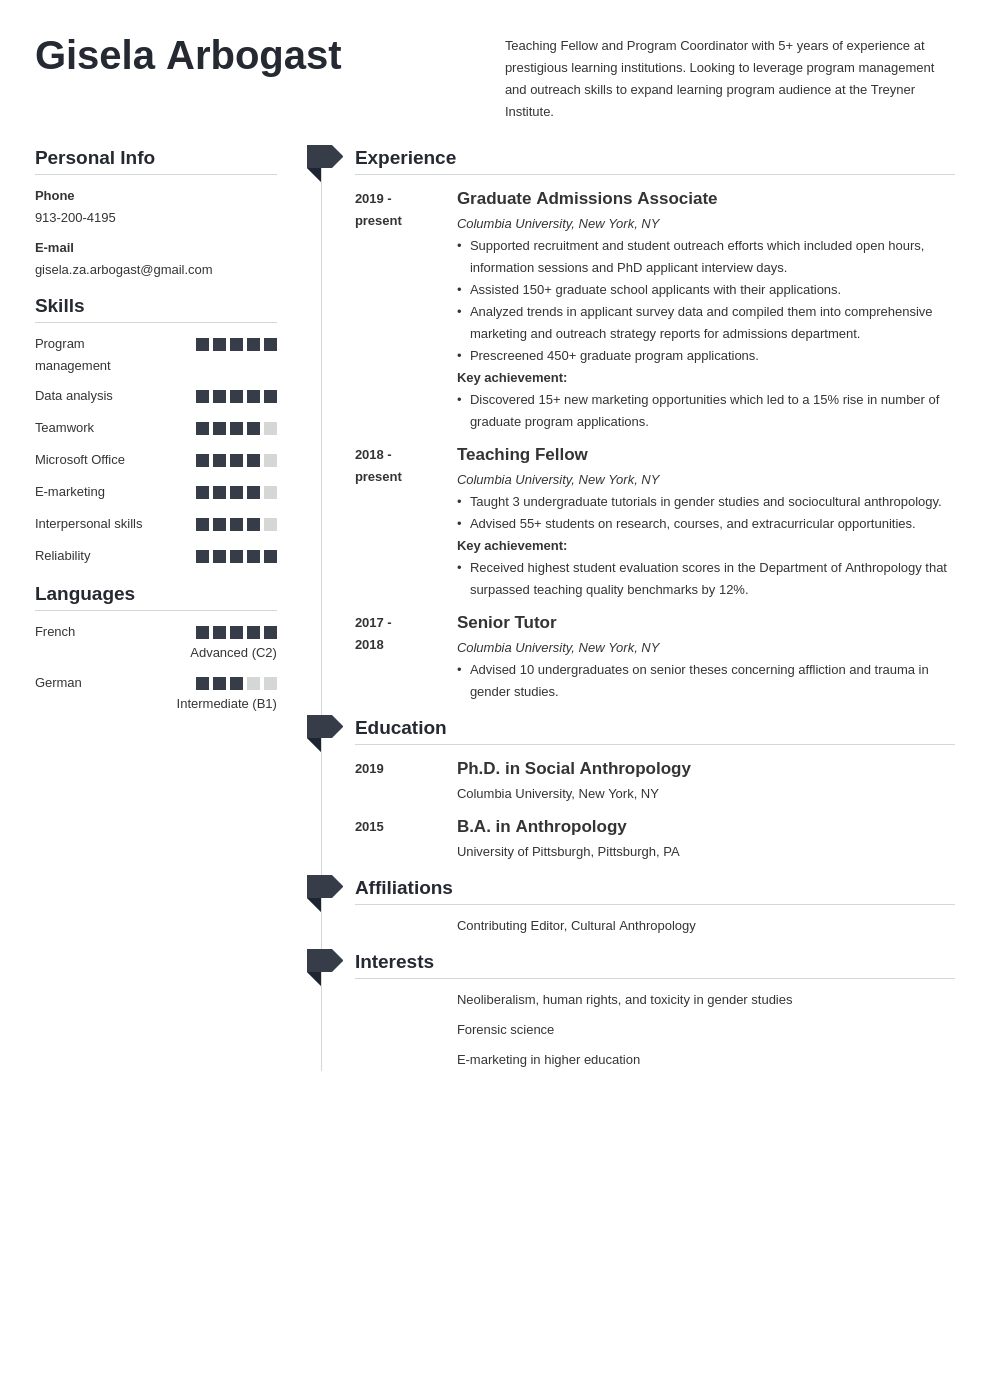 phd resume example template muse in 2020 Resume examples